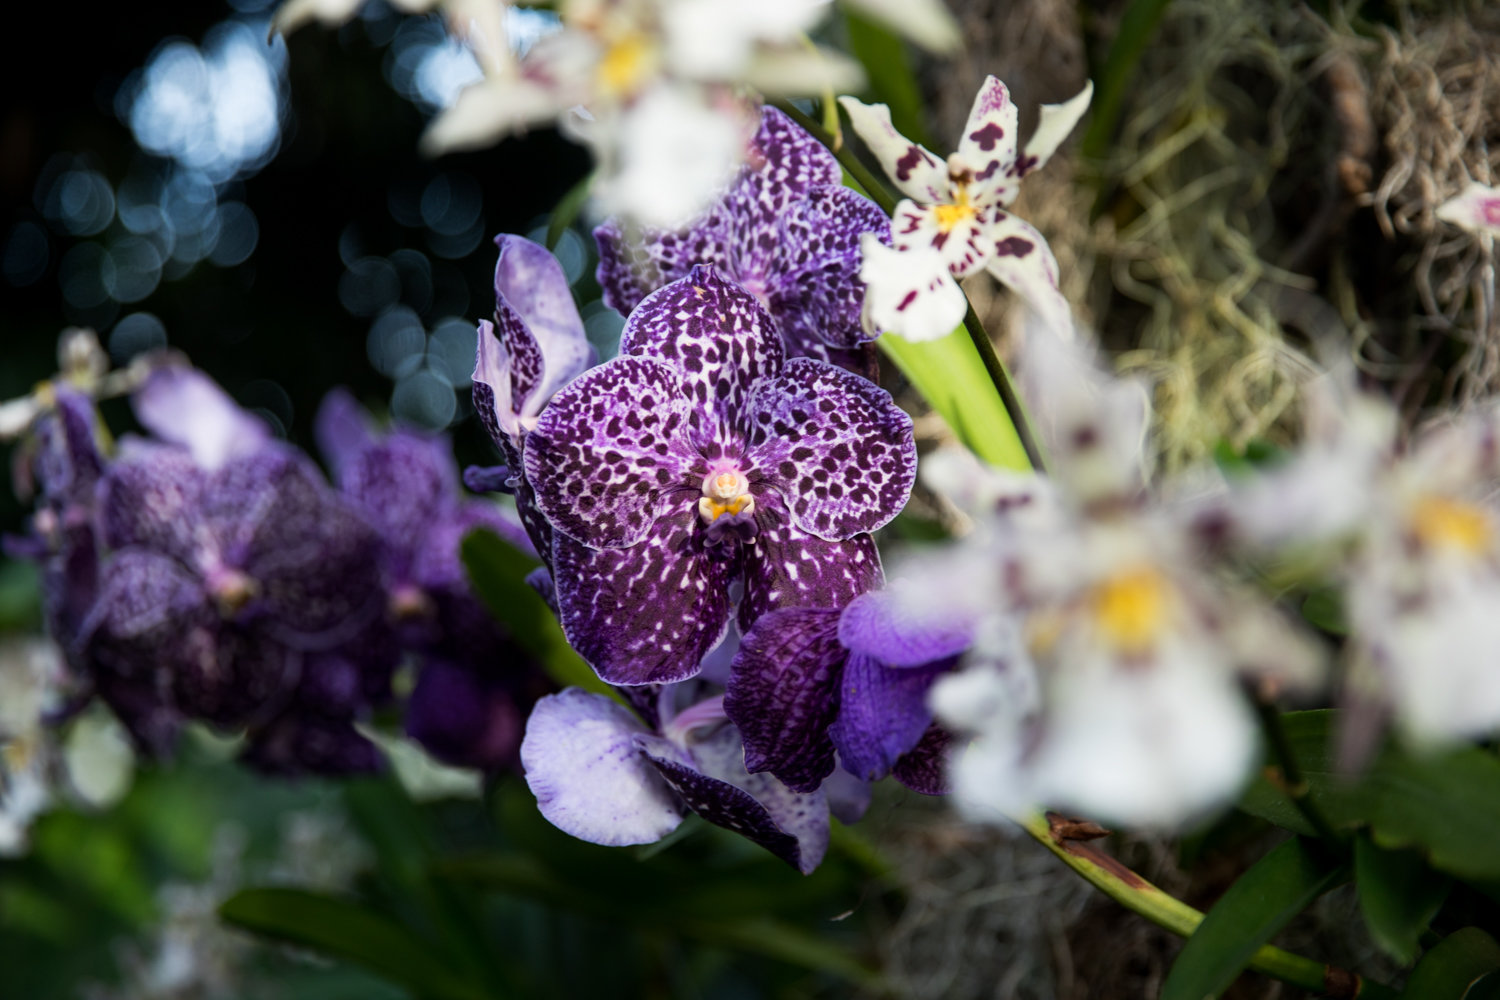 The Sunanda Jeff Leatham is an orchid of the Vanda variety named for the famed floral designer Jeff Leatham, who designed this year's orchid show at the New York Botanical Garden. It's on display through April 19.